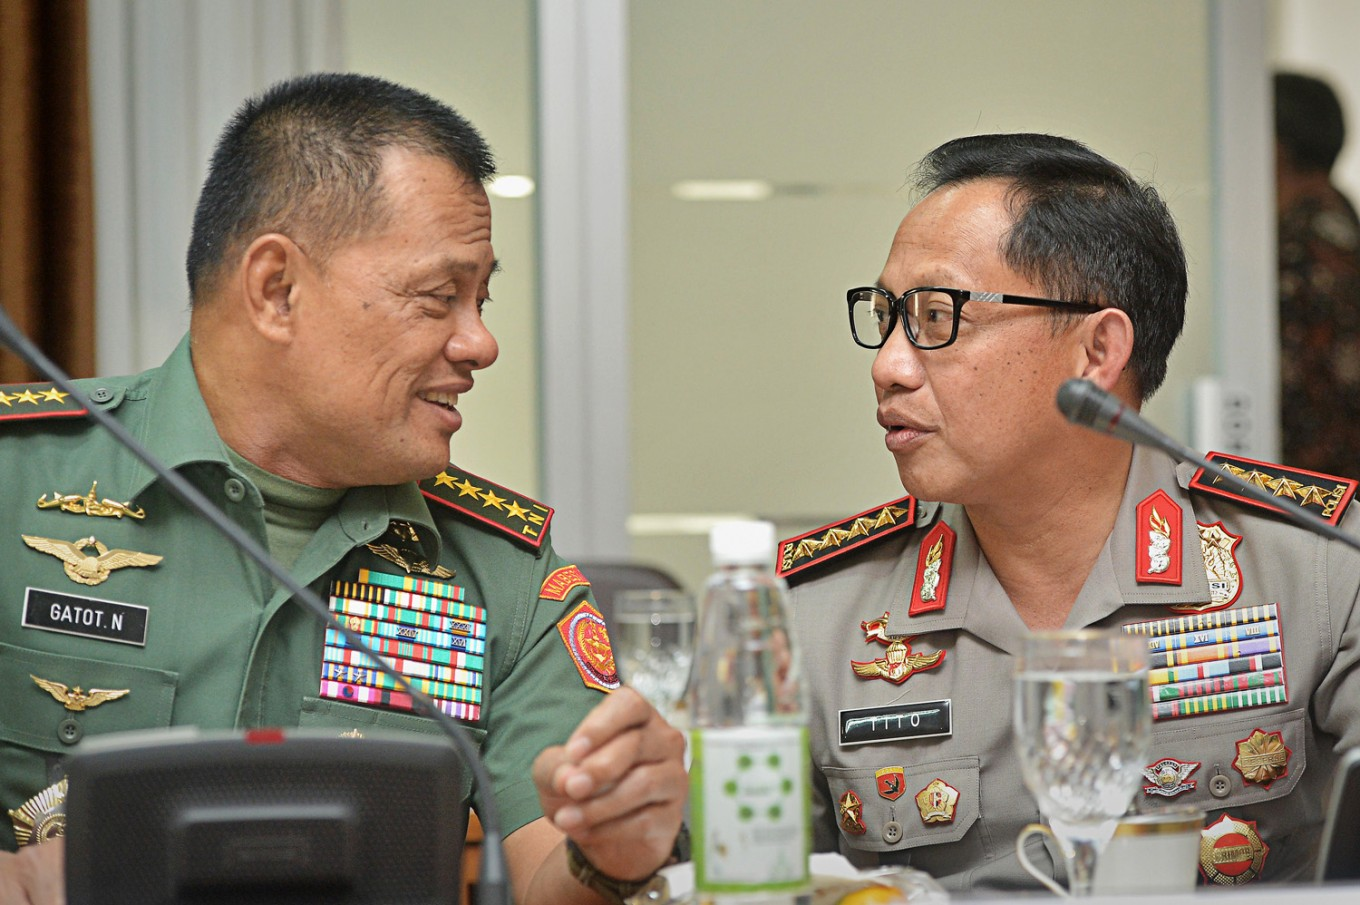 Gatot downplays controversy over weapons remark